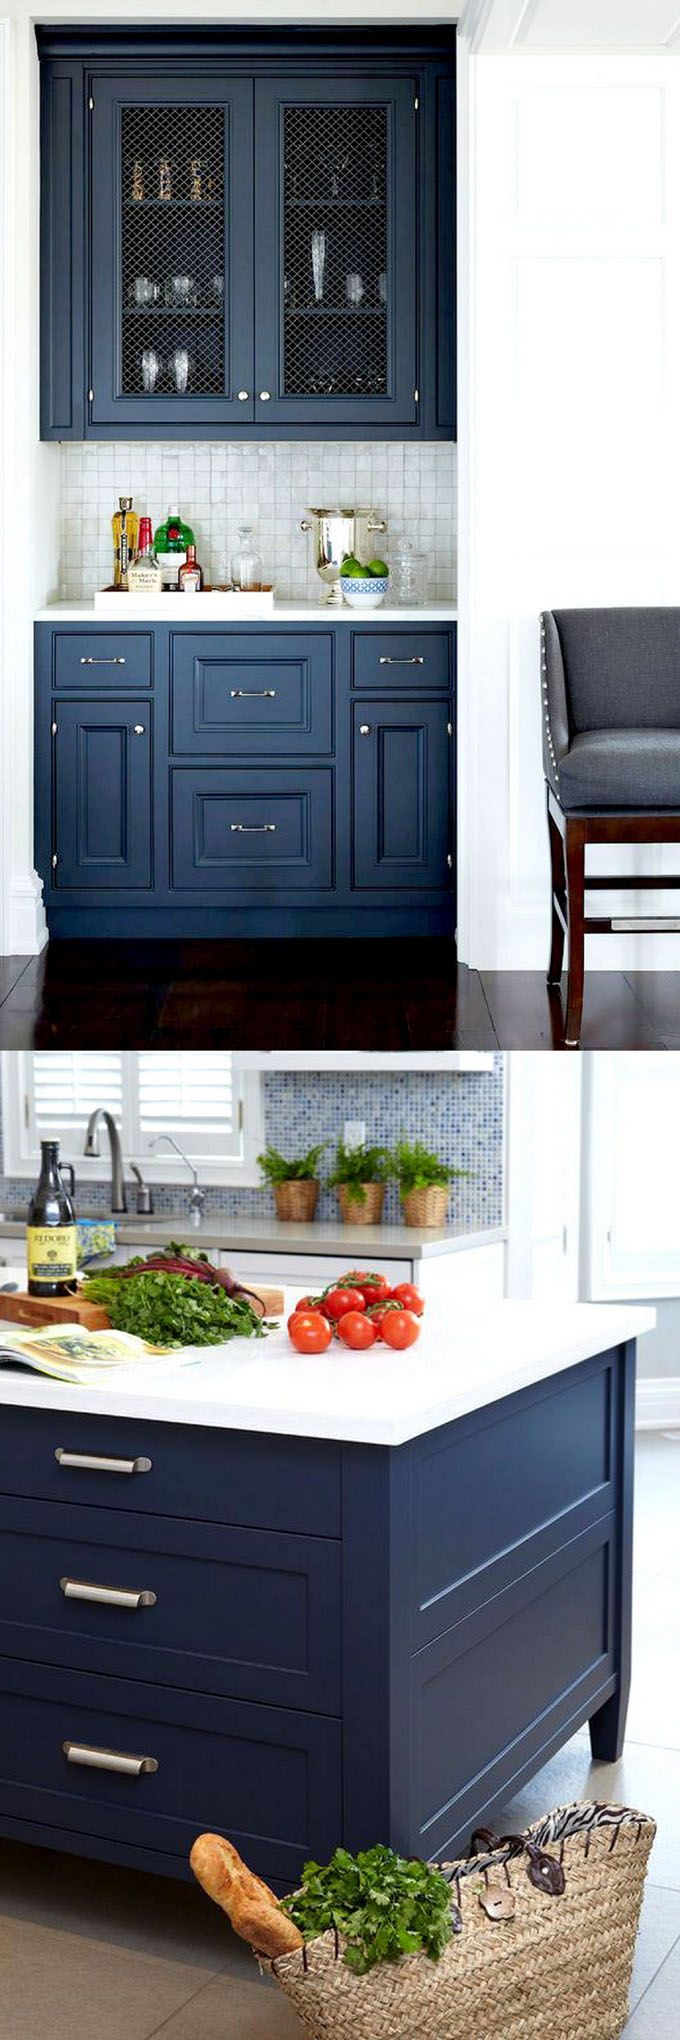 Colored Kitchen Cabinets best 25+ cabinet paint colors ideas only on pinterest | cabinet